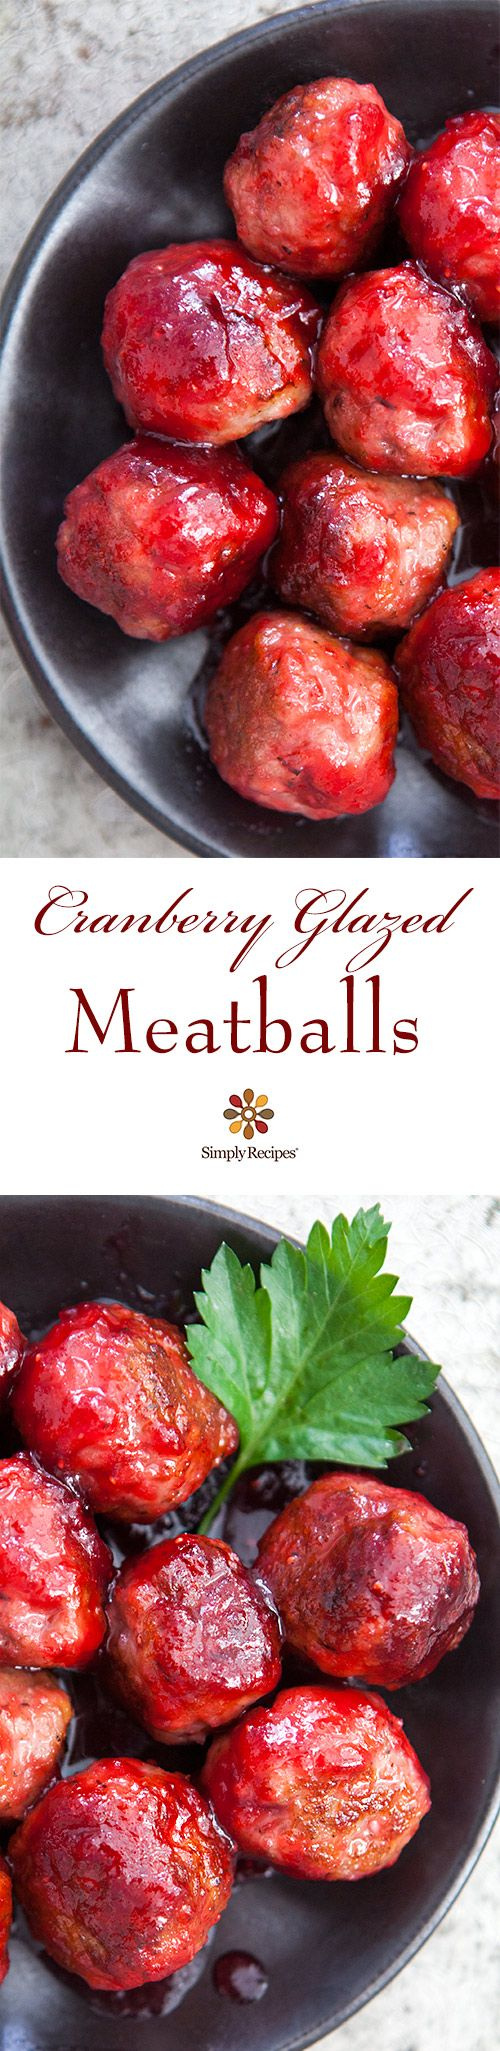 Perfect for holiday entertaining! Tender turkey meatballs ...